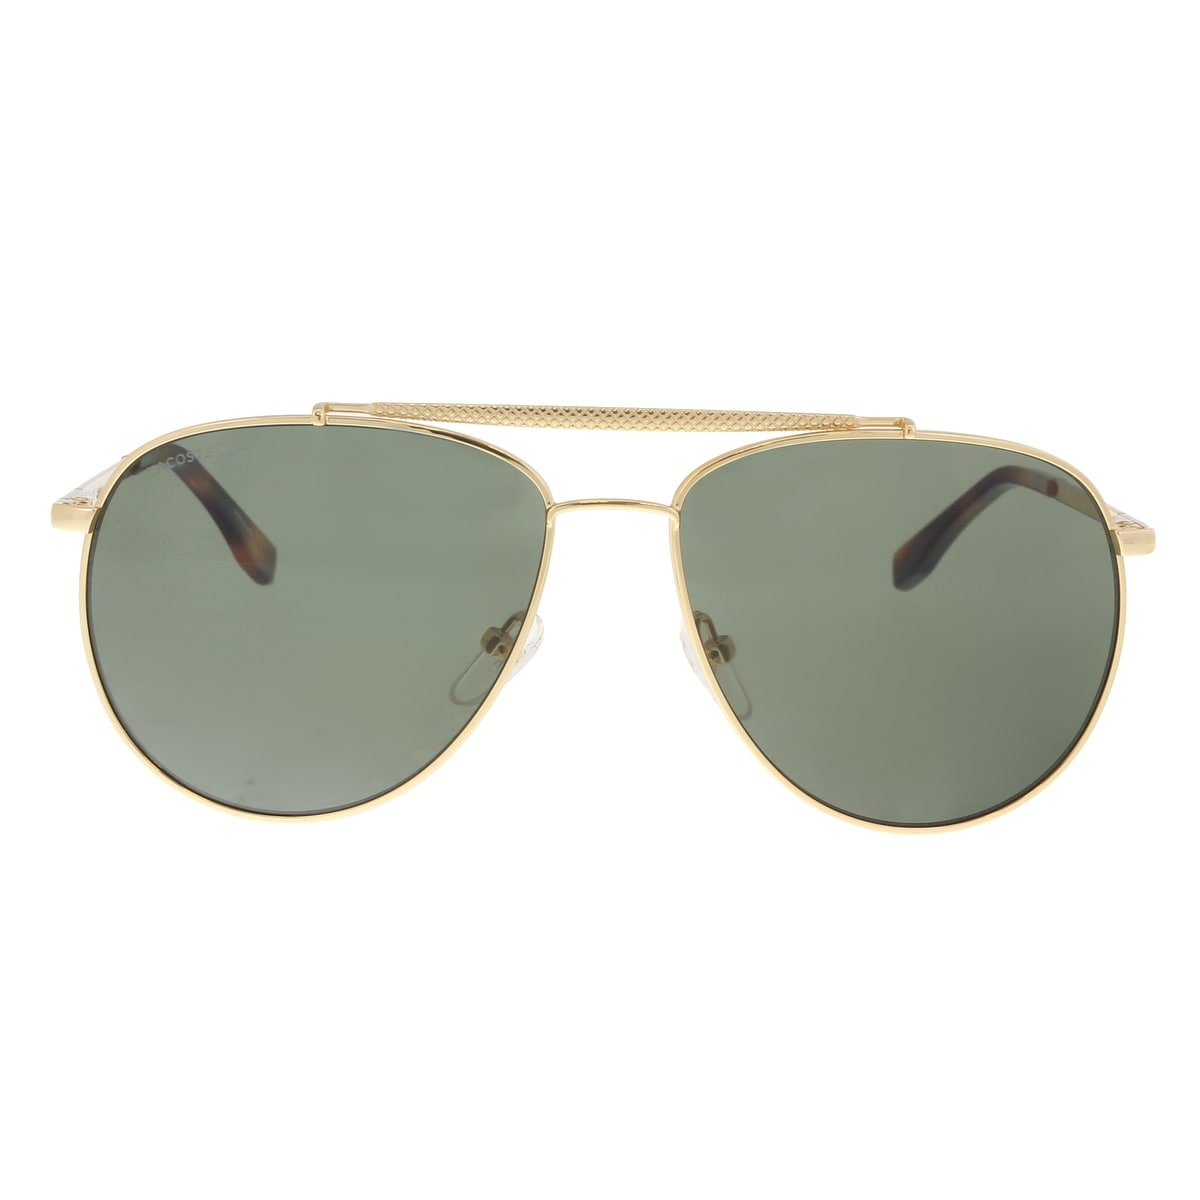 1a4eb8376d2bc Shop Lacoste L177S 714 Gold Aviator Sunglasses - 57-15-140 - Ships To  Canada - Overstock - 20005122